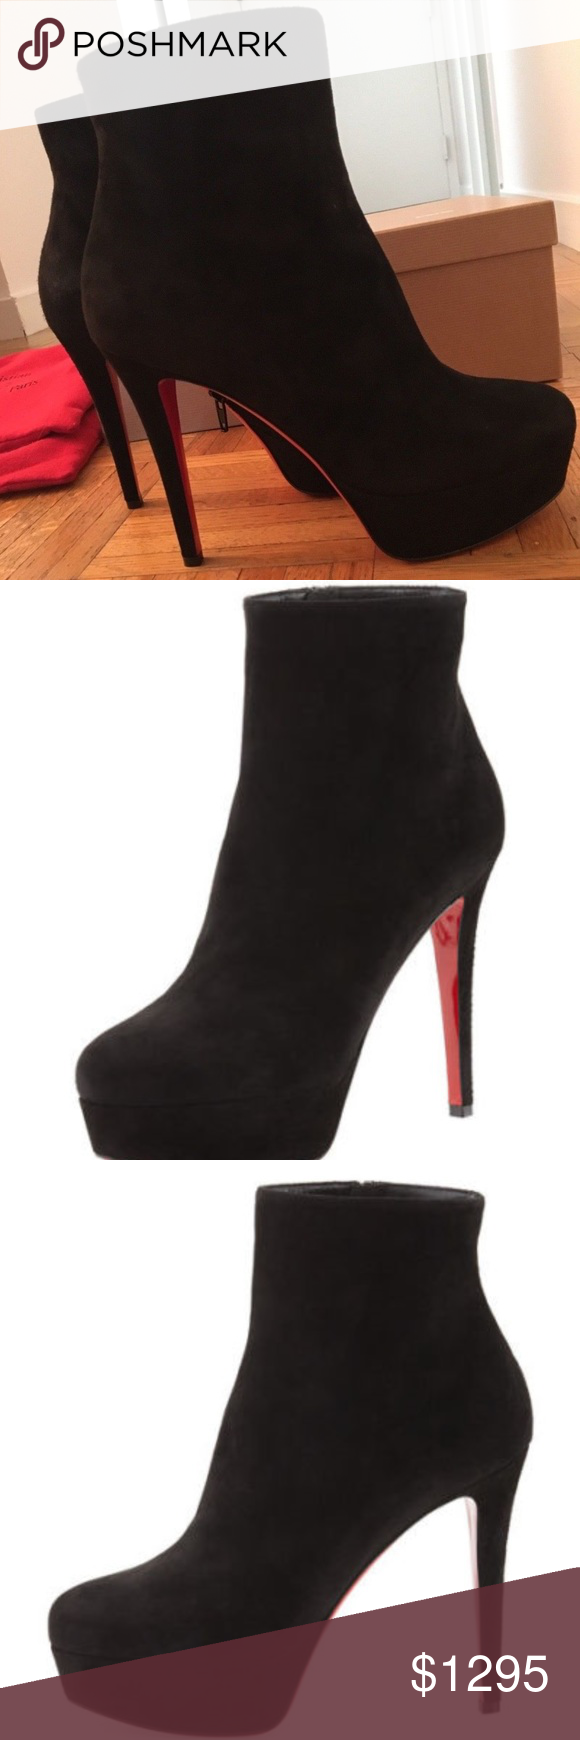 5c9e524a666 Christian Louboutin Bianca Bootie Sz 37 New in Box BRAND NEW IN BOX ...